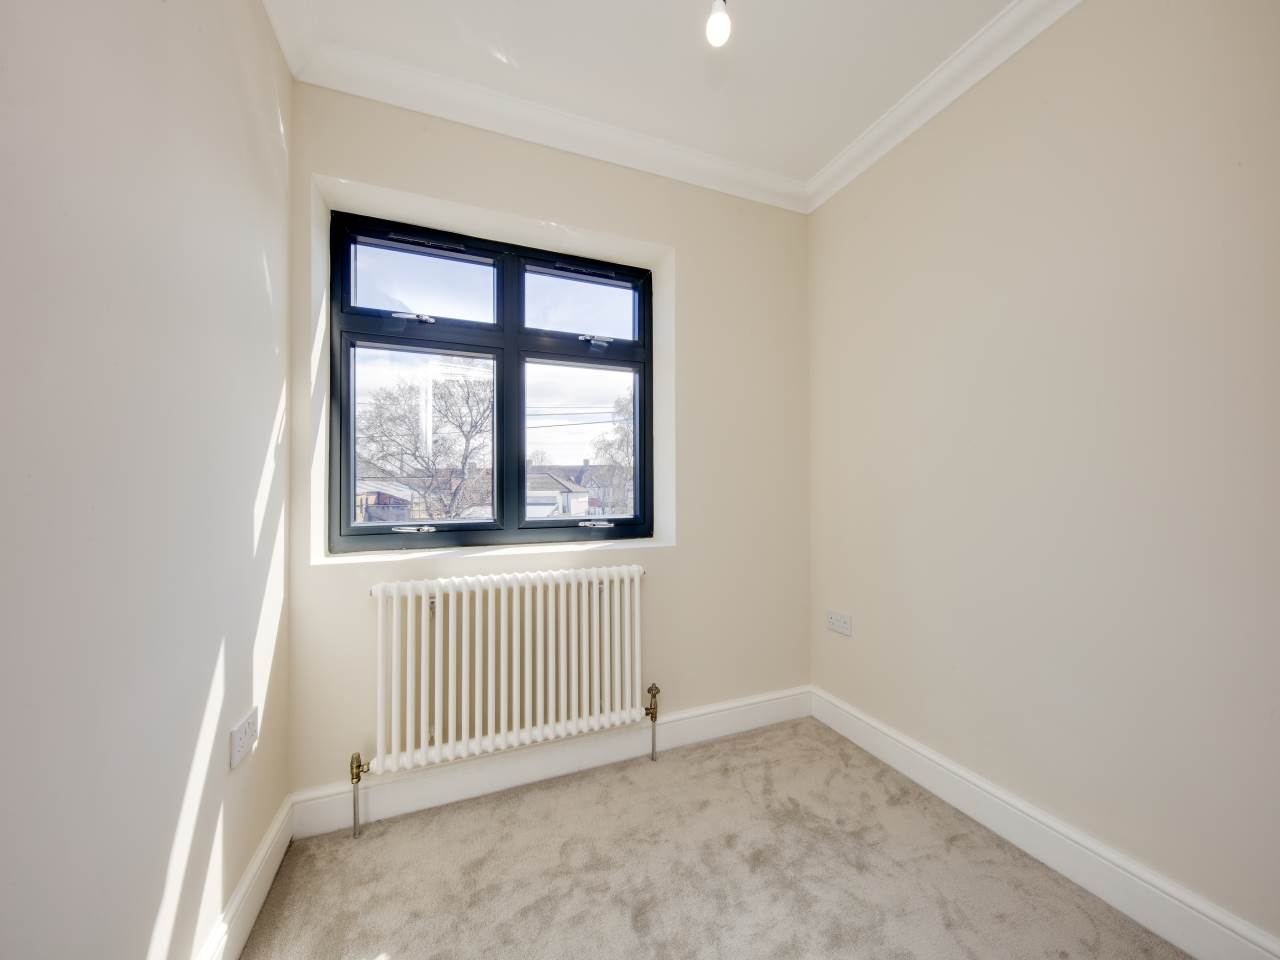 3 bed house for sale in Shernhall Street , Walthamstow   - Property Image 12